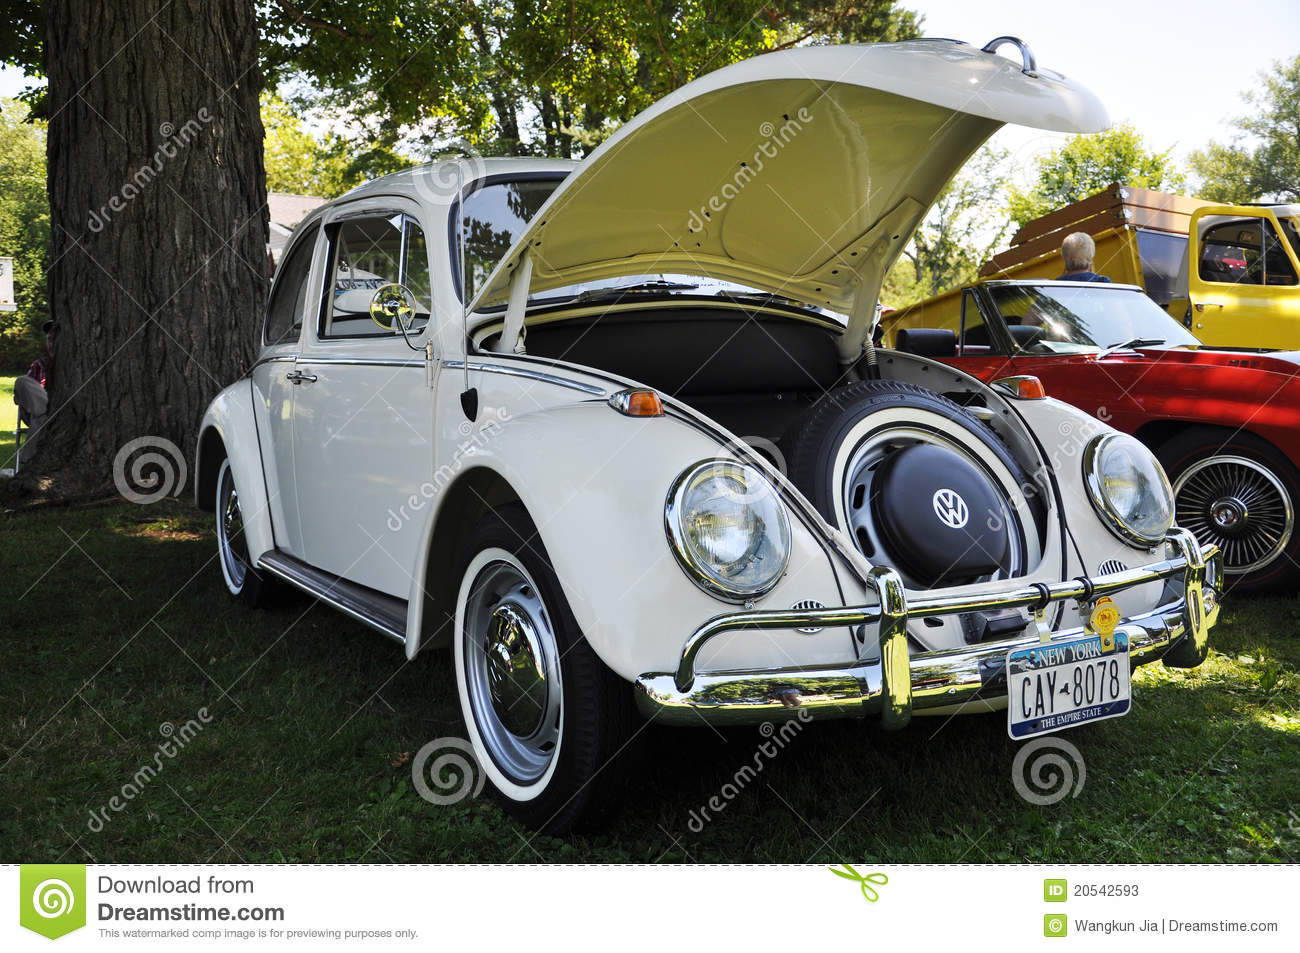 1976 White Volkswagen Beetle Editorial Stock Photo - Image of 1976, festival: 20542593